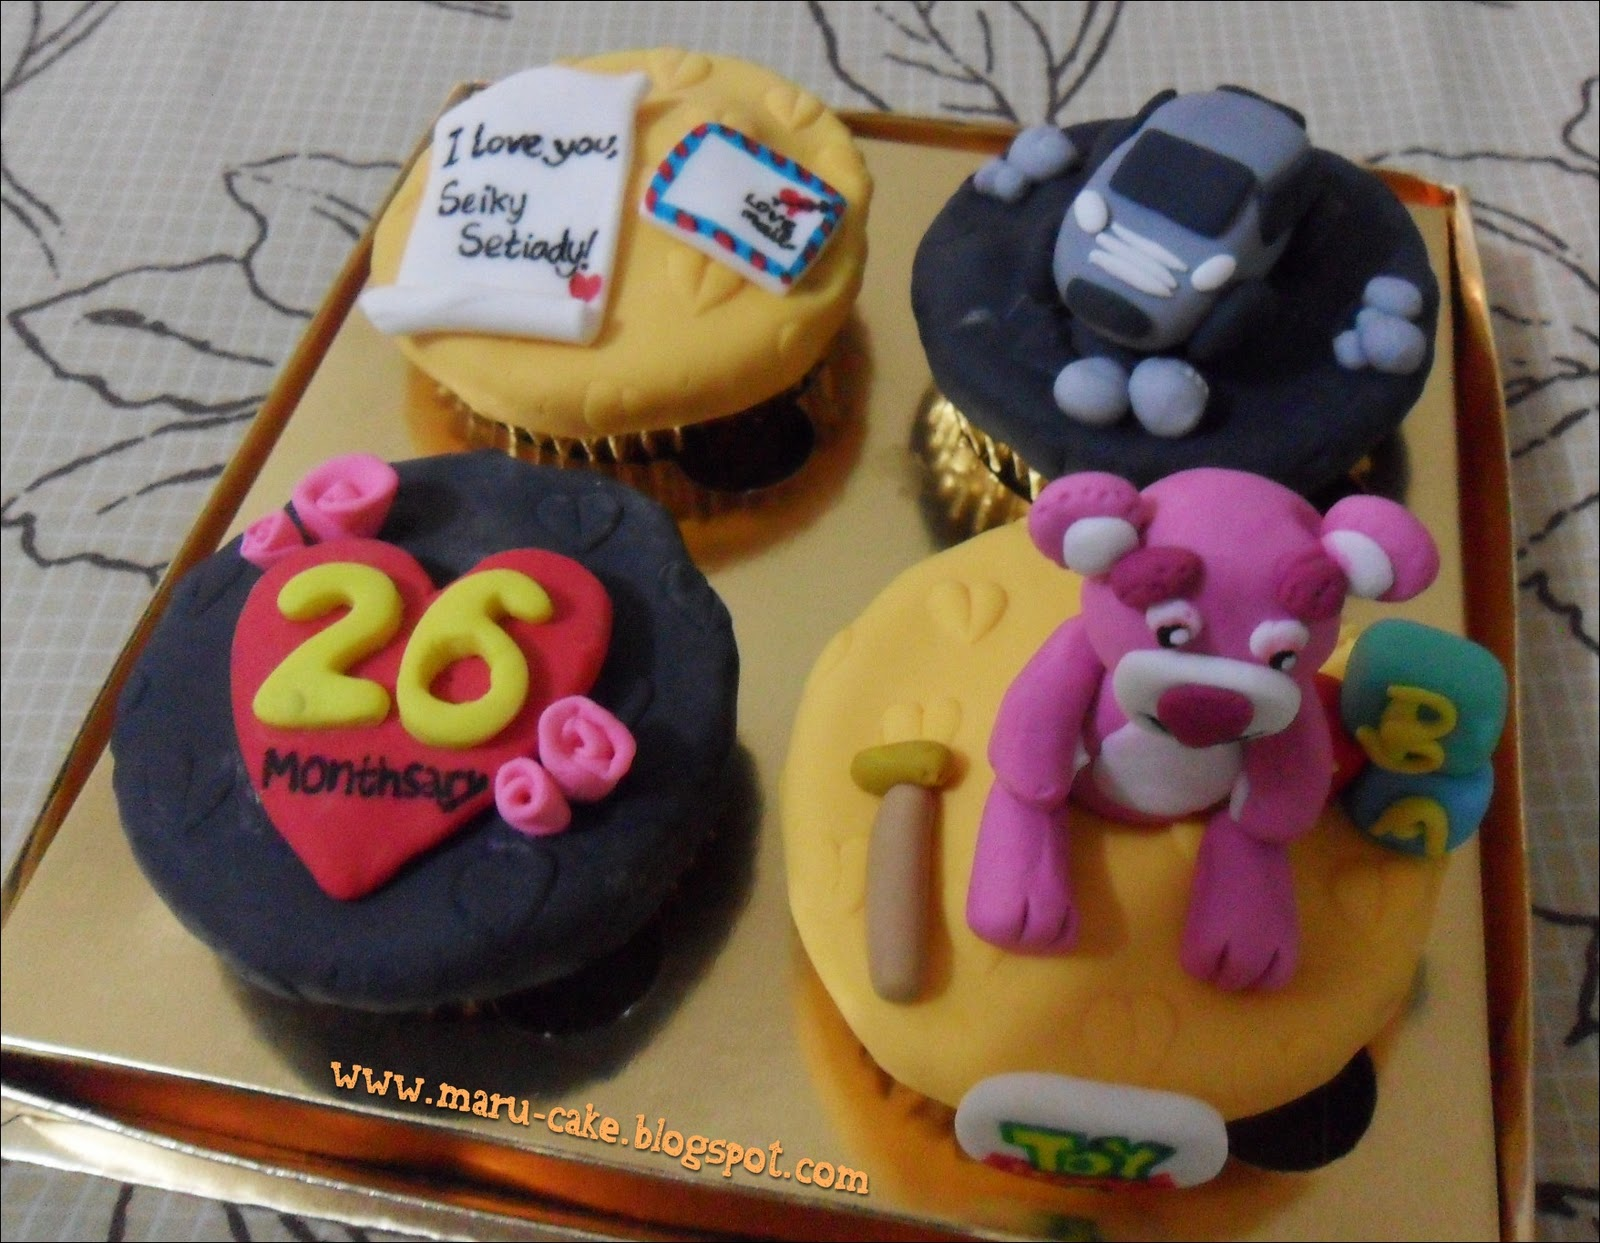 Cake Design For Monthsary : Boyfriends 22nd Birthday Cake Ideas and Designs